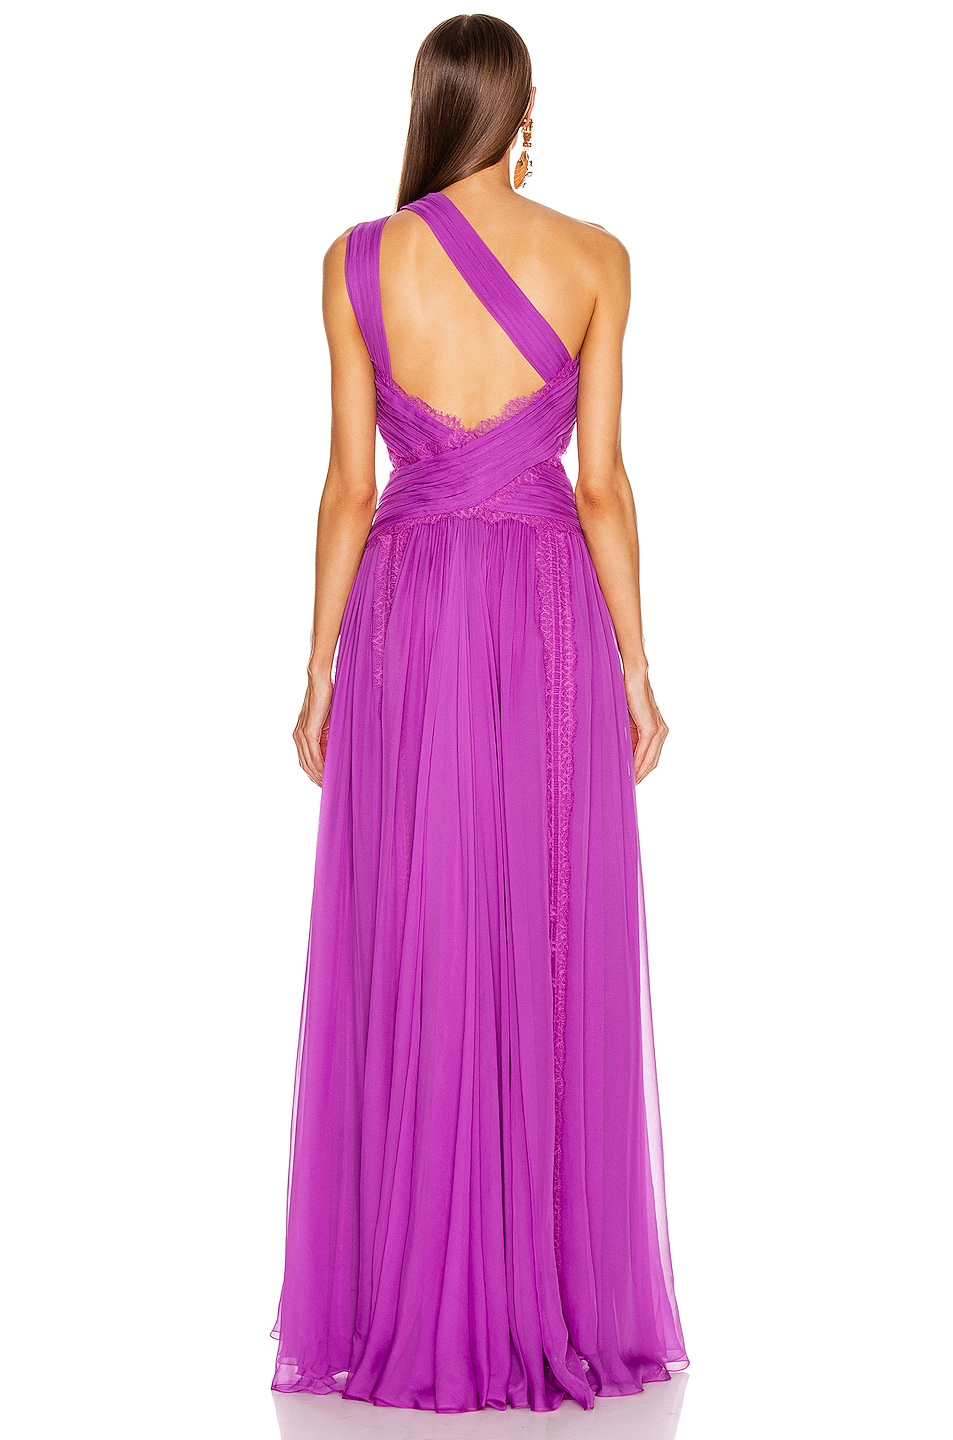 Image 4 of Zuhair Murad Silk Chiffon Long Dress in Hyacinth Violet